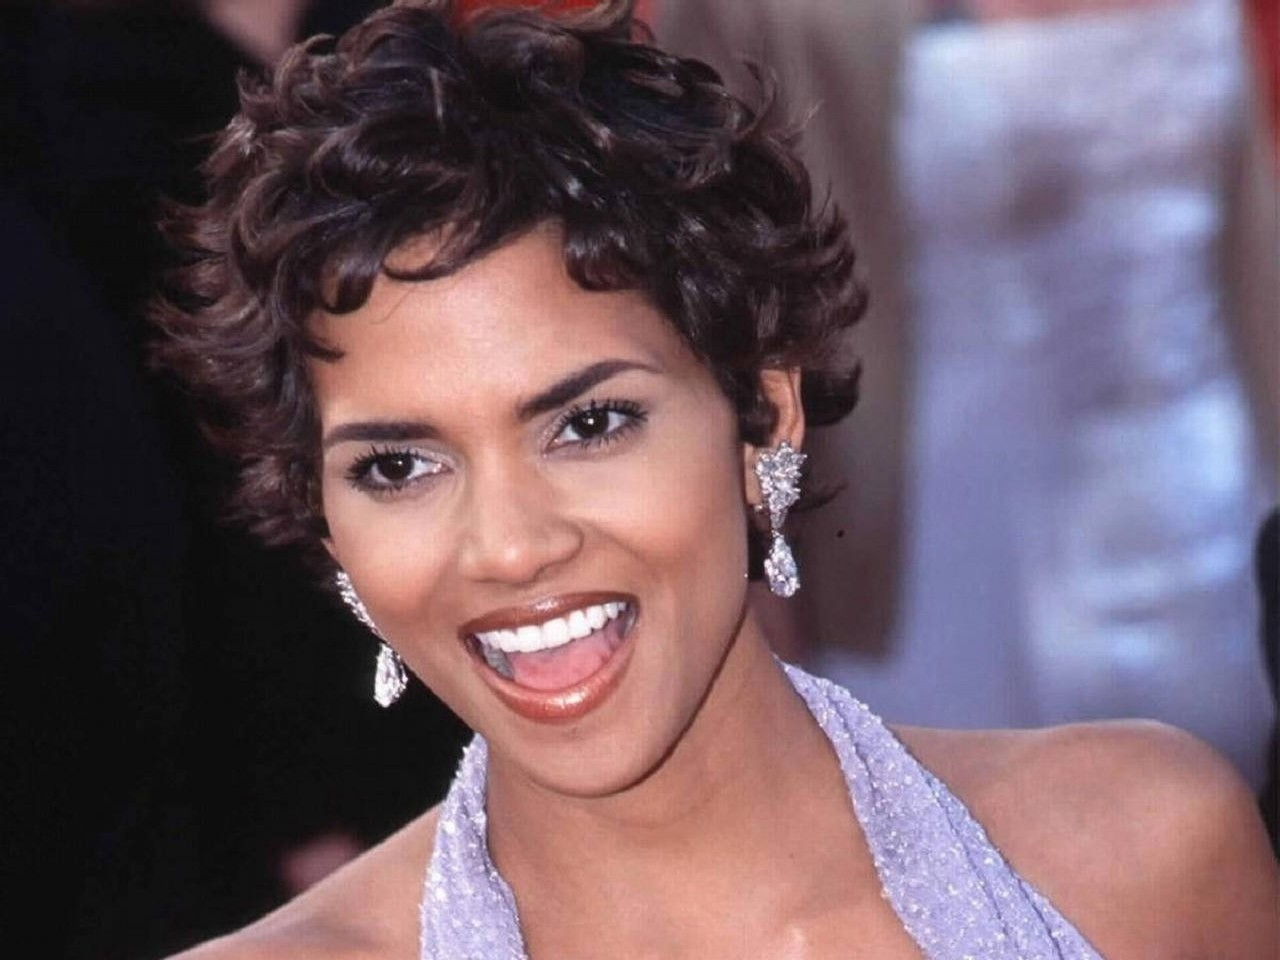 Wallpaper - una sorridente Halle Berry